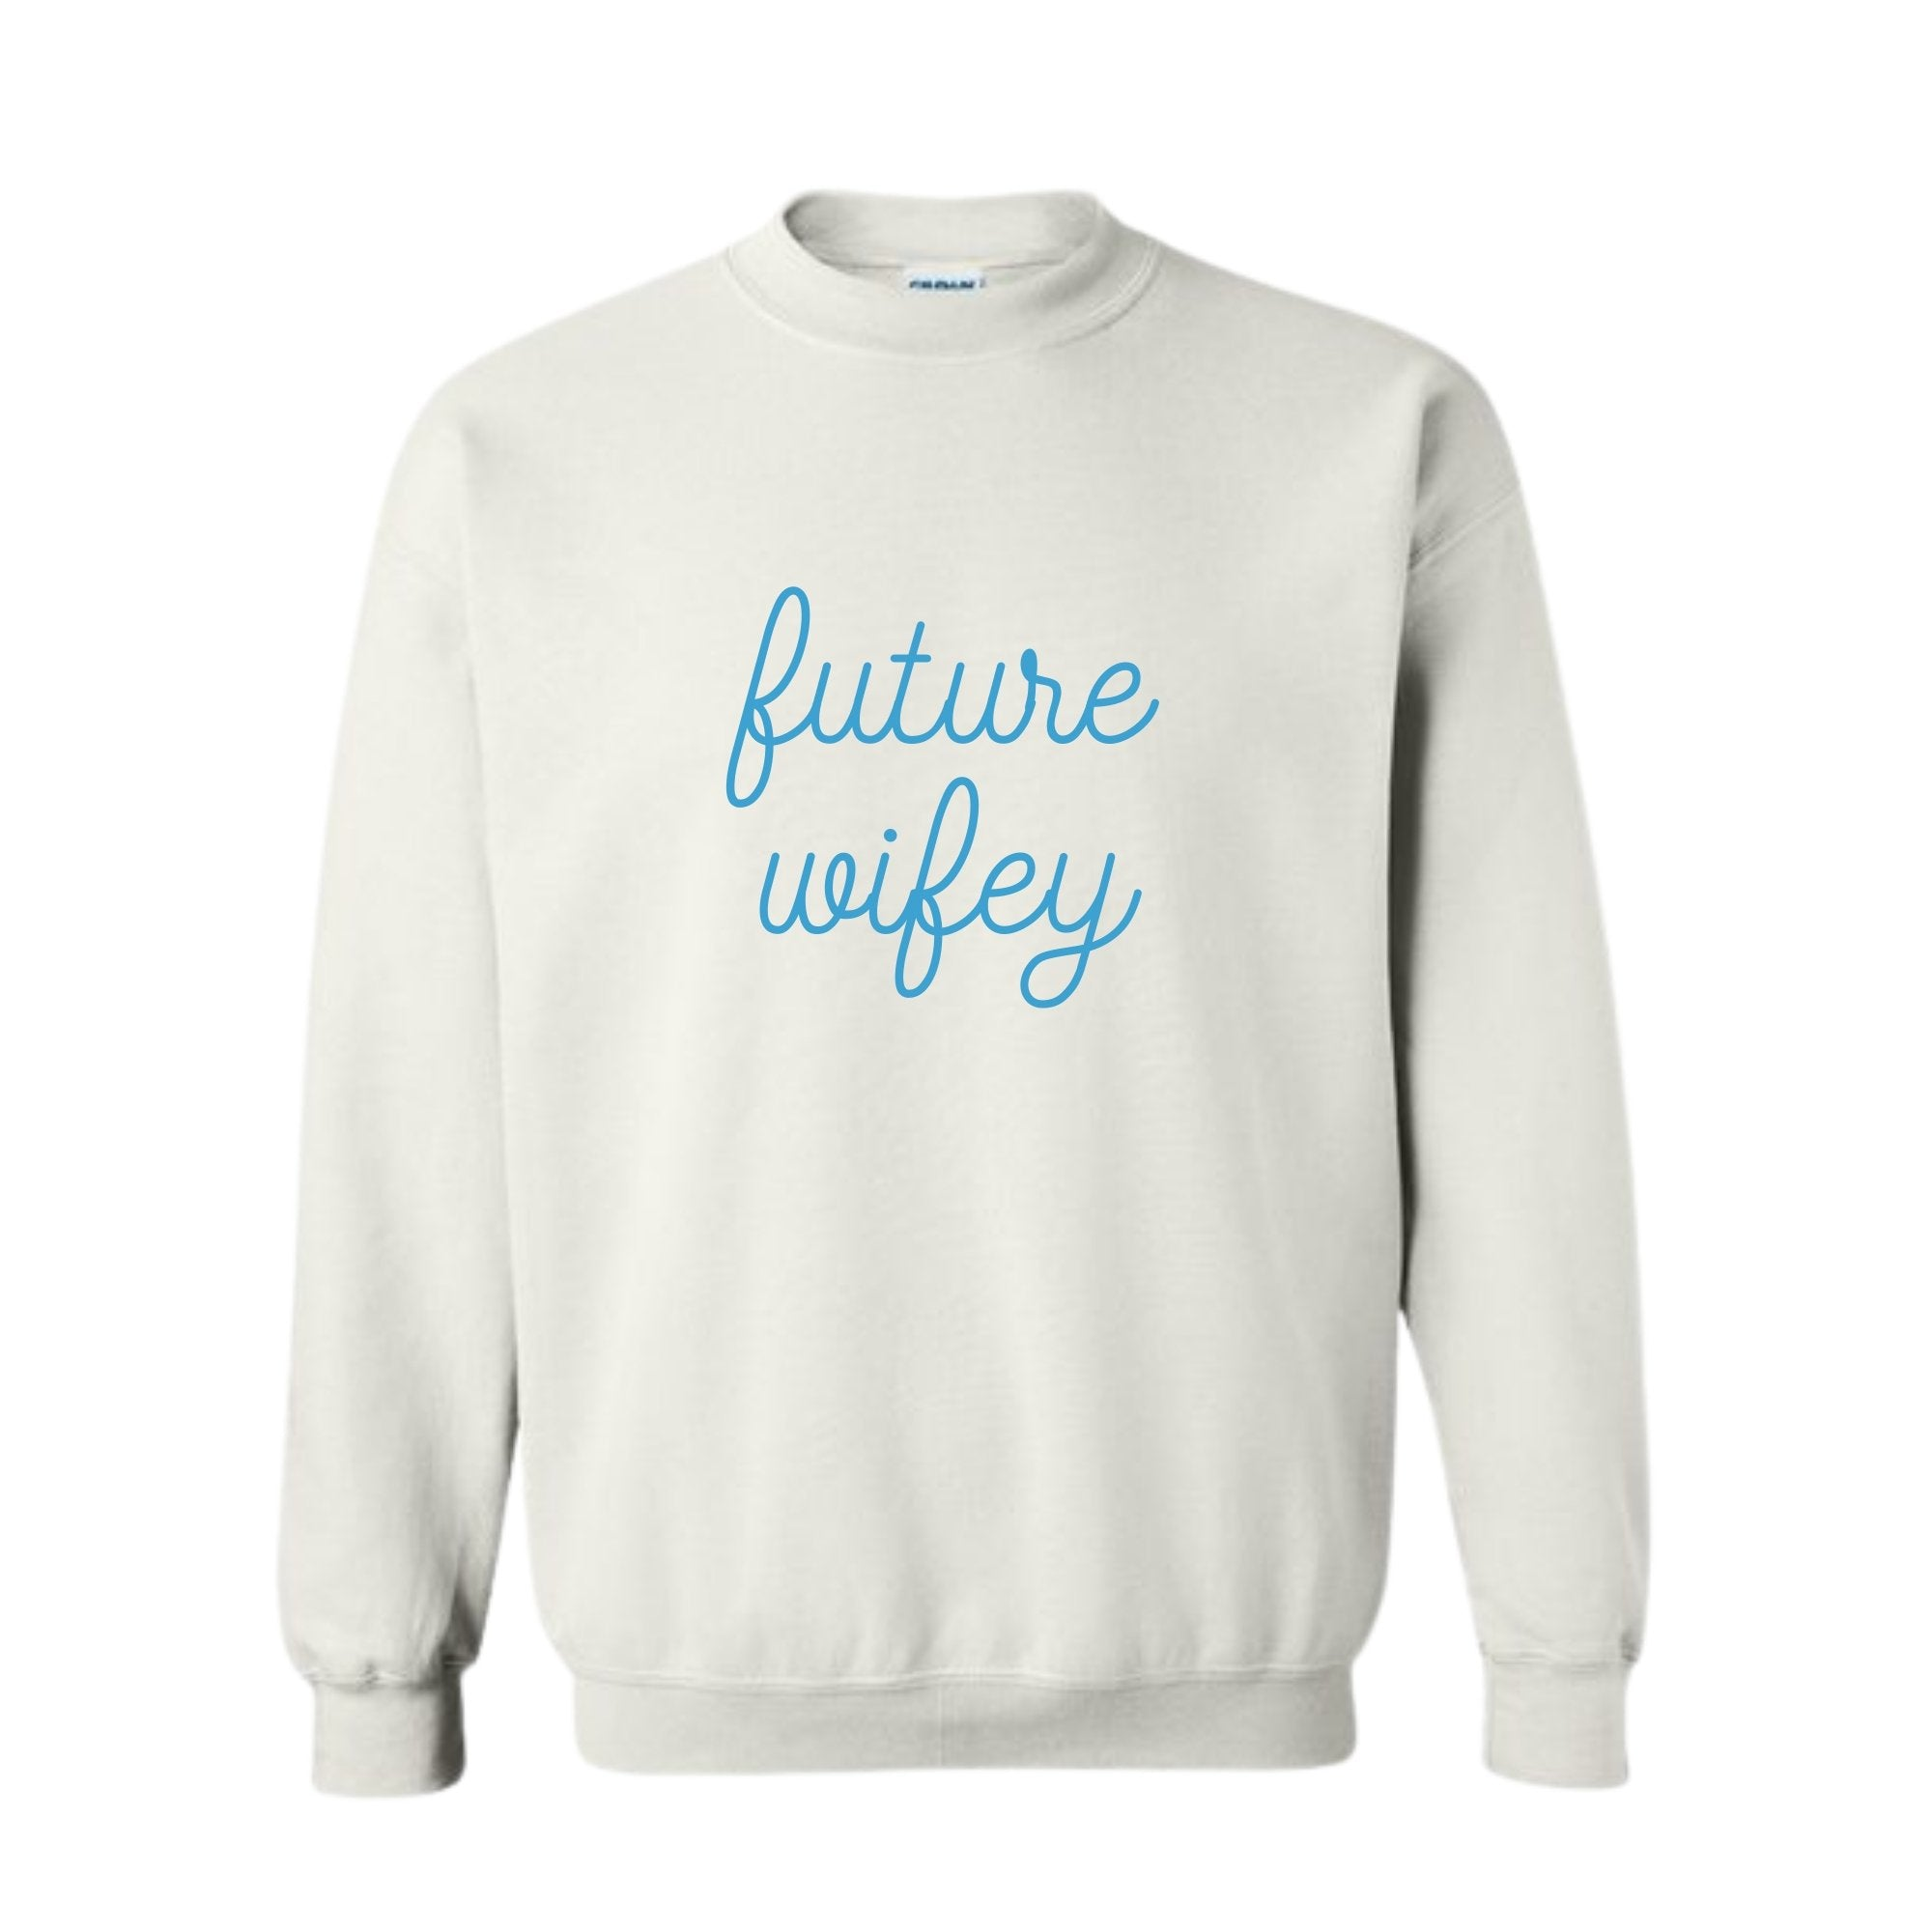 Future Wifey Sweatshirt - Sprinkled With Pink #bachelorette #custom #gifts